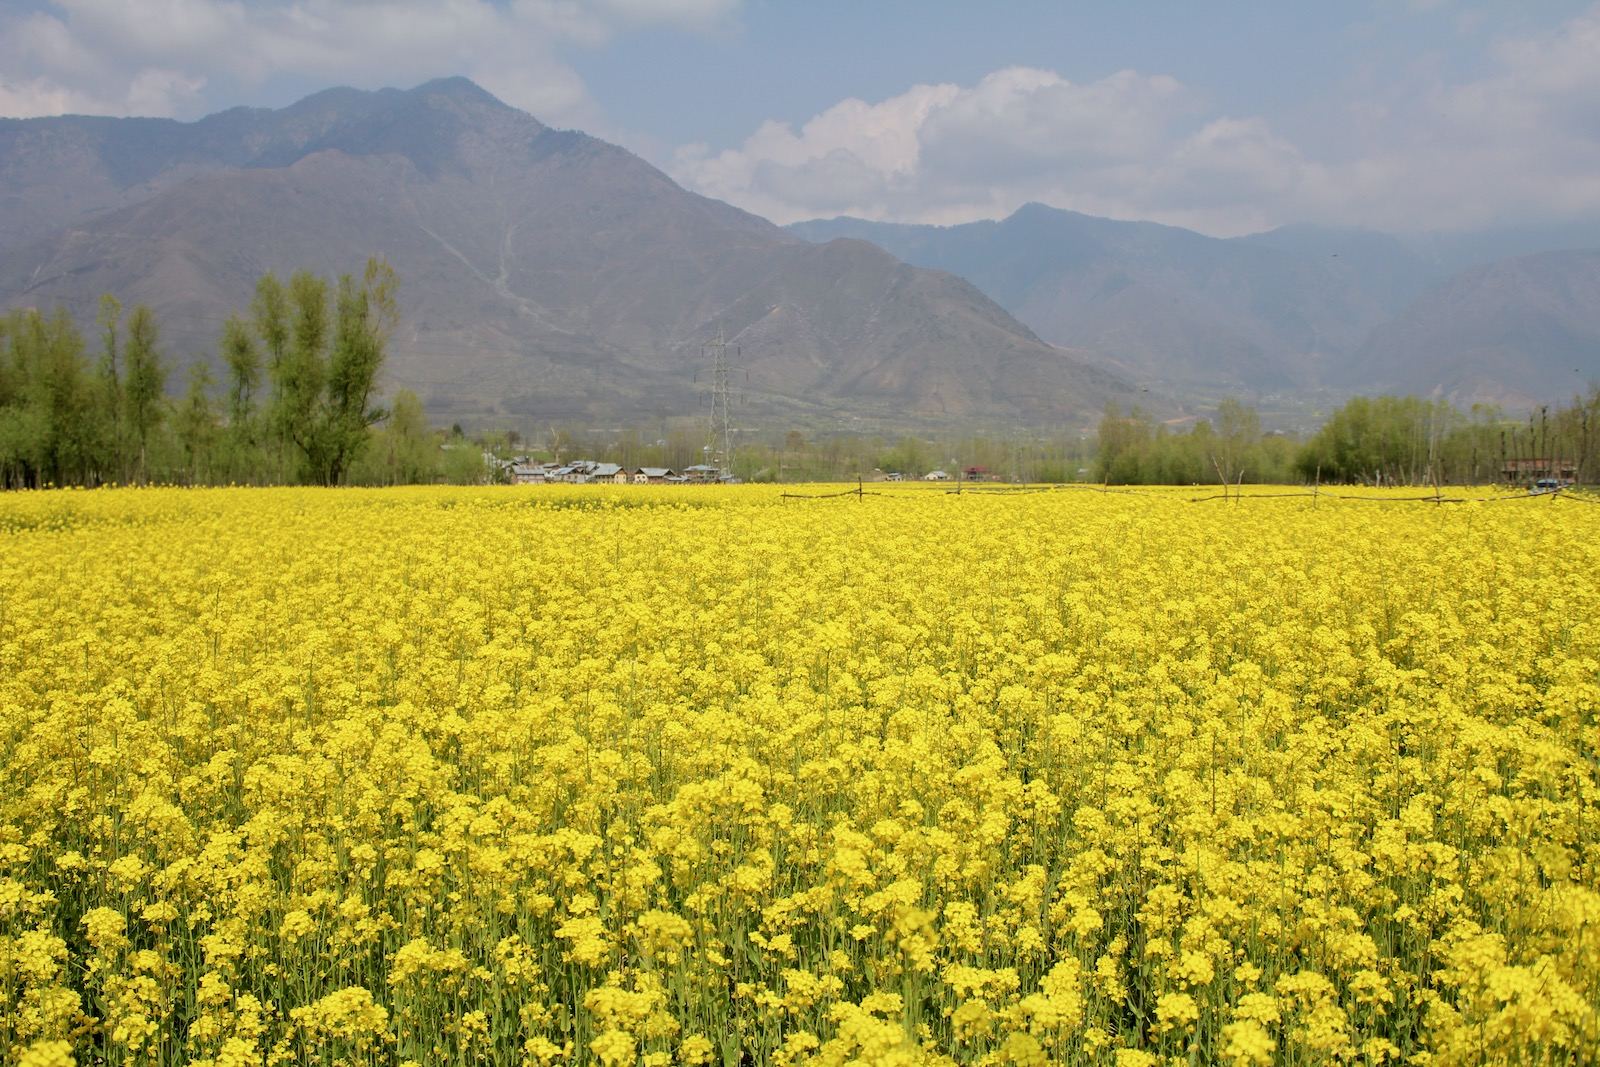 Bright yellow mustard fields in bloom during spring time in the Kashmir Valley, India